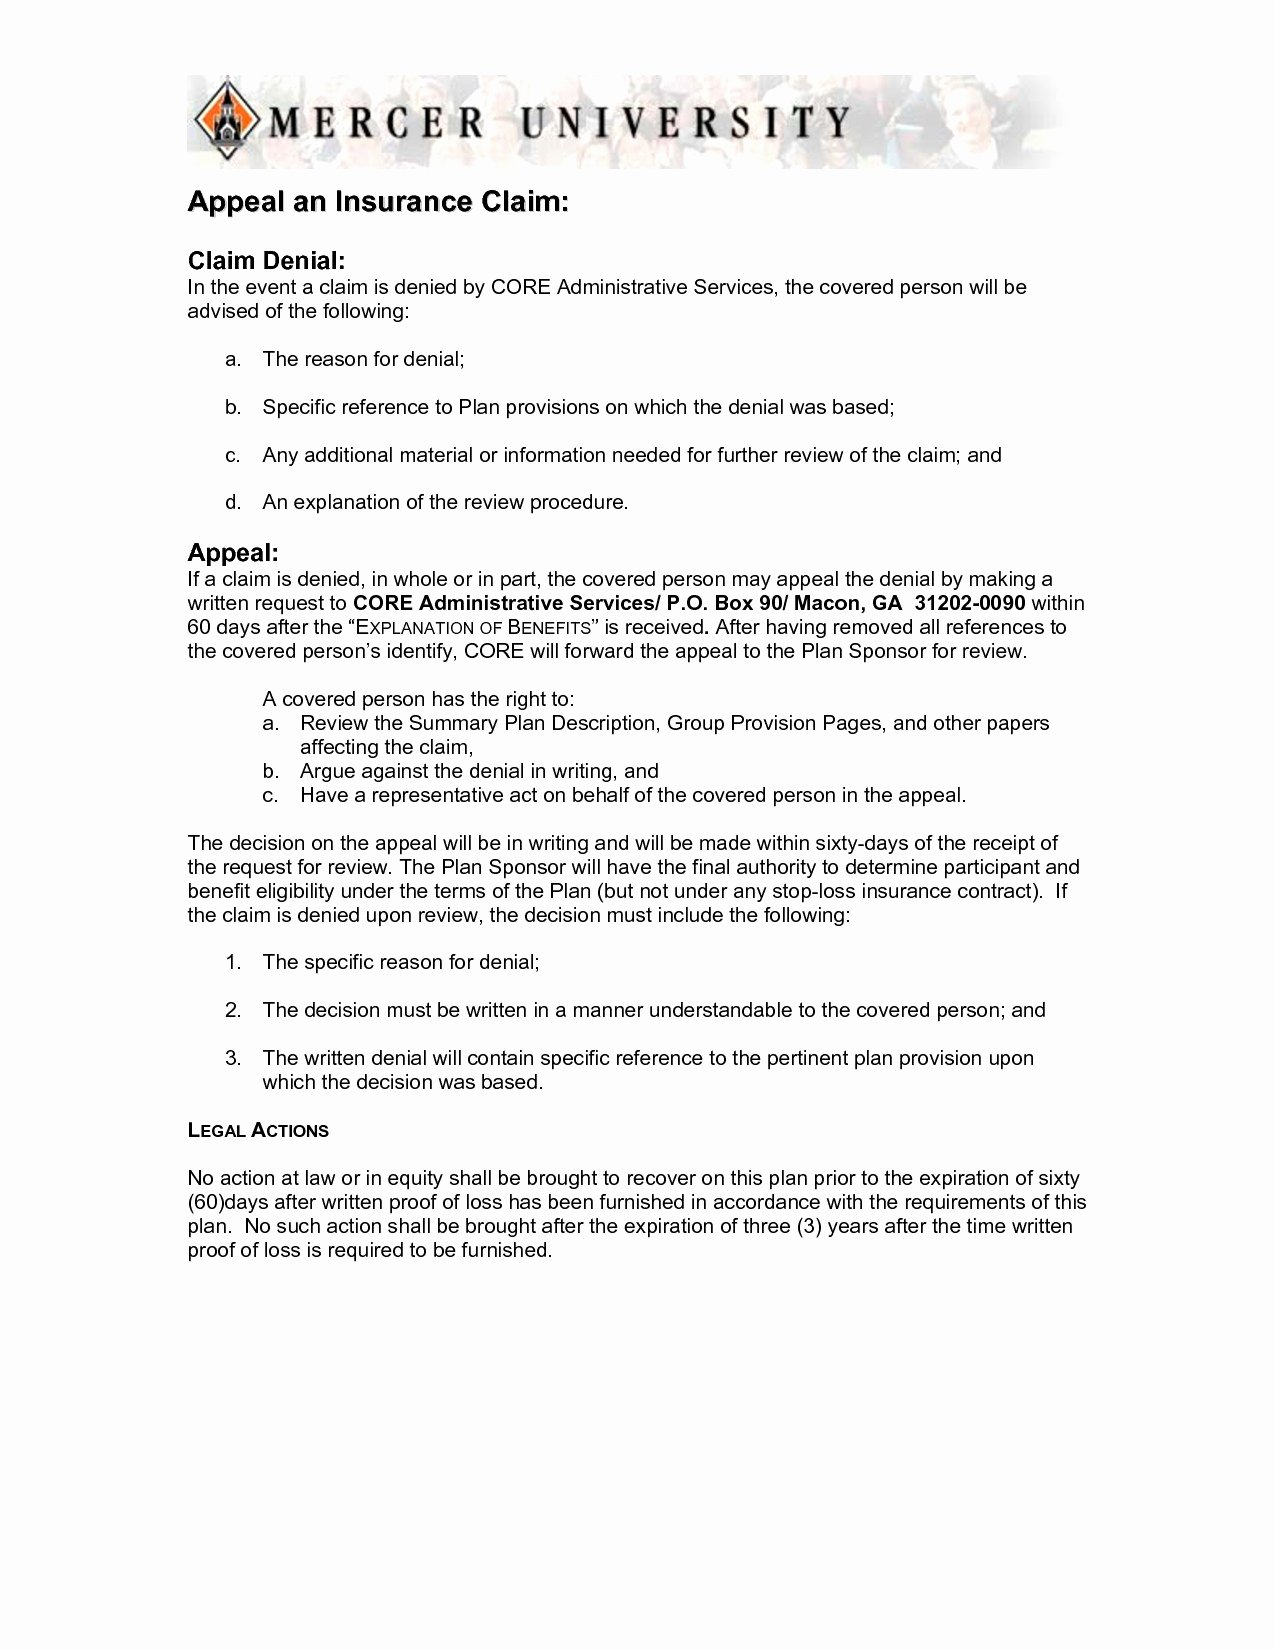 Claim Denial Letter Template Best Of 1 2 Appeal Letter Template